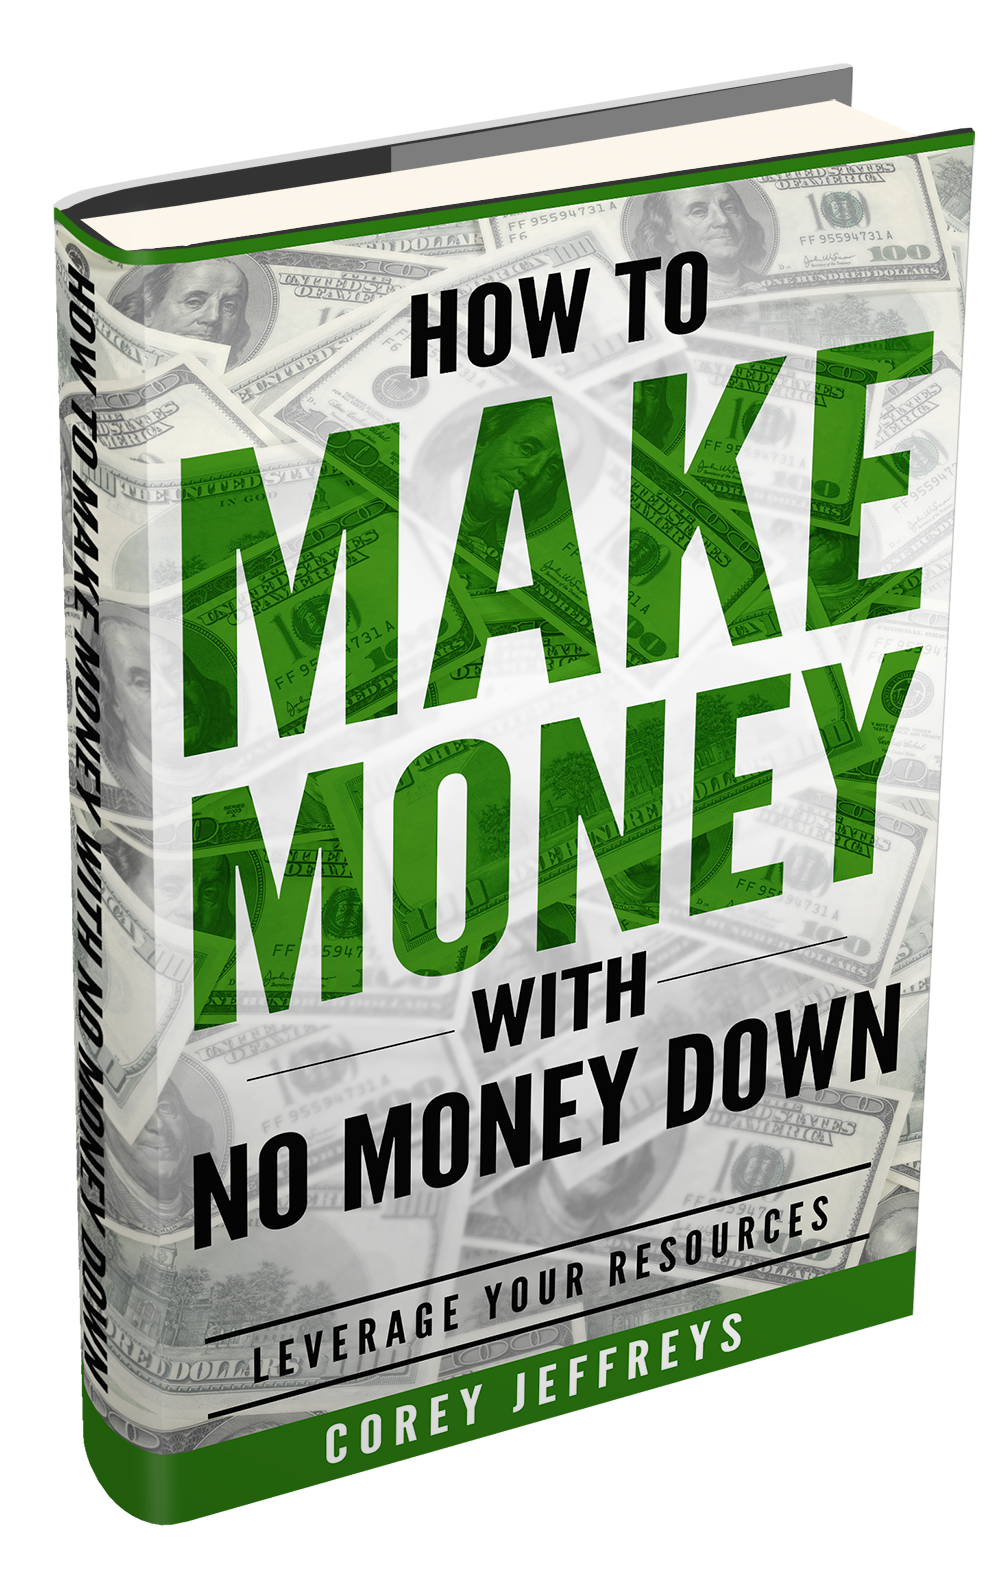 Image of How To Make Money With No Money Down